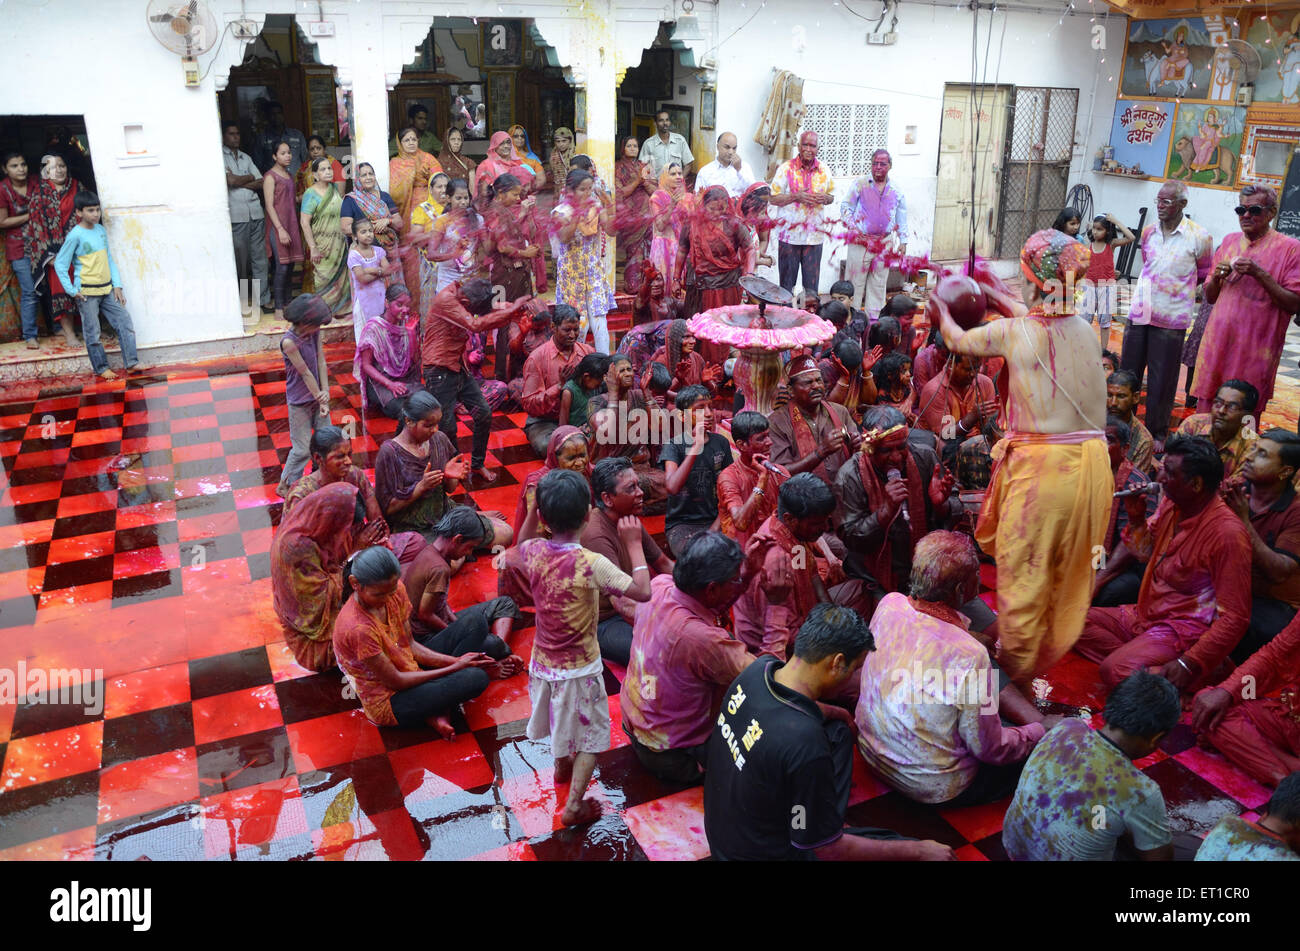 Men and women singing devotional songs in Gang shyamji temple at Jodhpur India - Stock Image